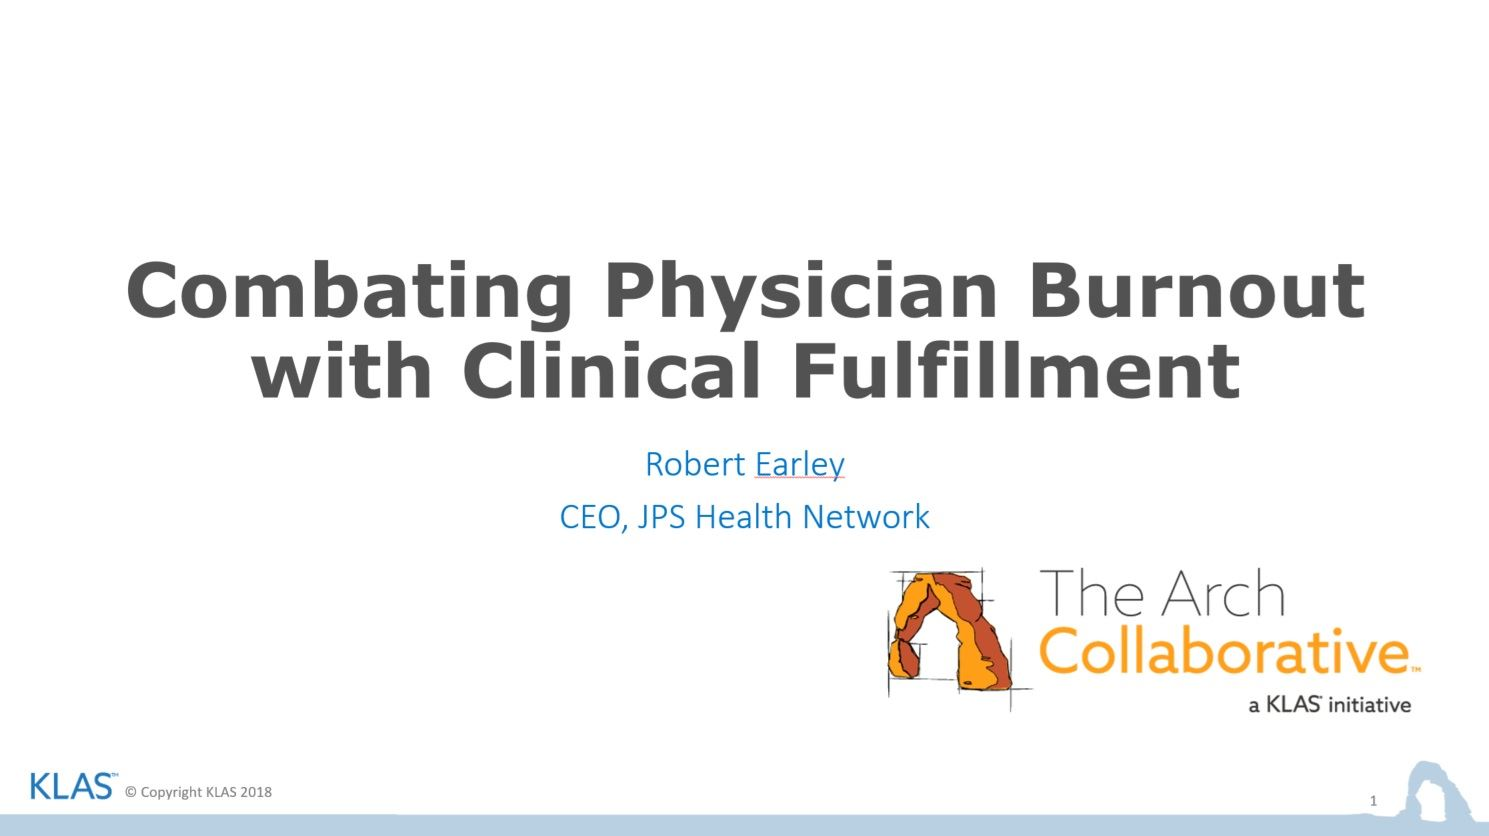 Combating Physician Burnout with Clinical Fulfillment with JPS Health Network